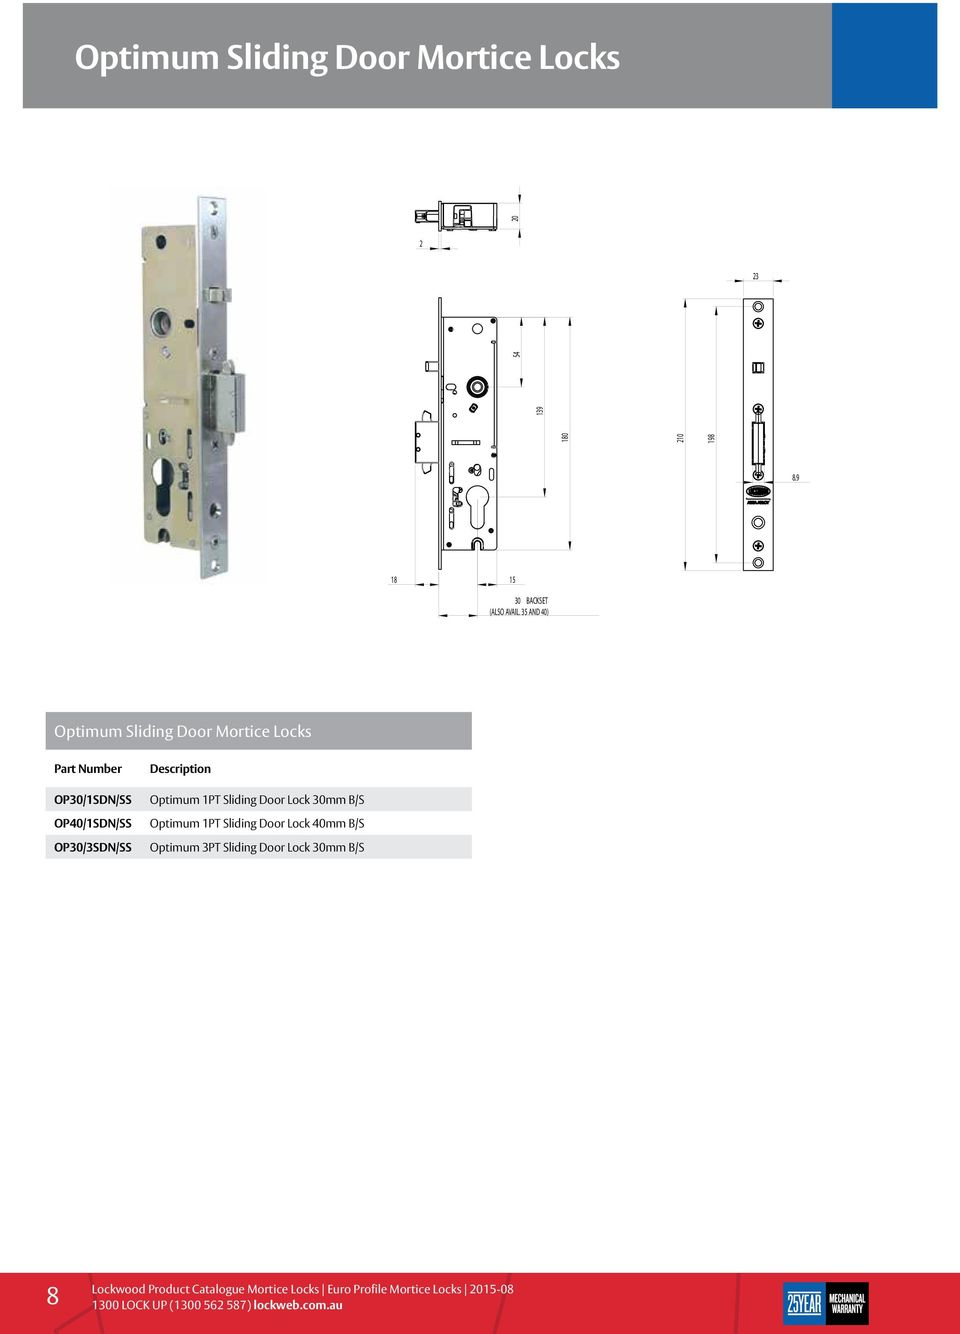 35 AND 40) 18 Optimum Sliding Door Mortice Locks OP30/1SDN/SS OP40/1SDN/SS